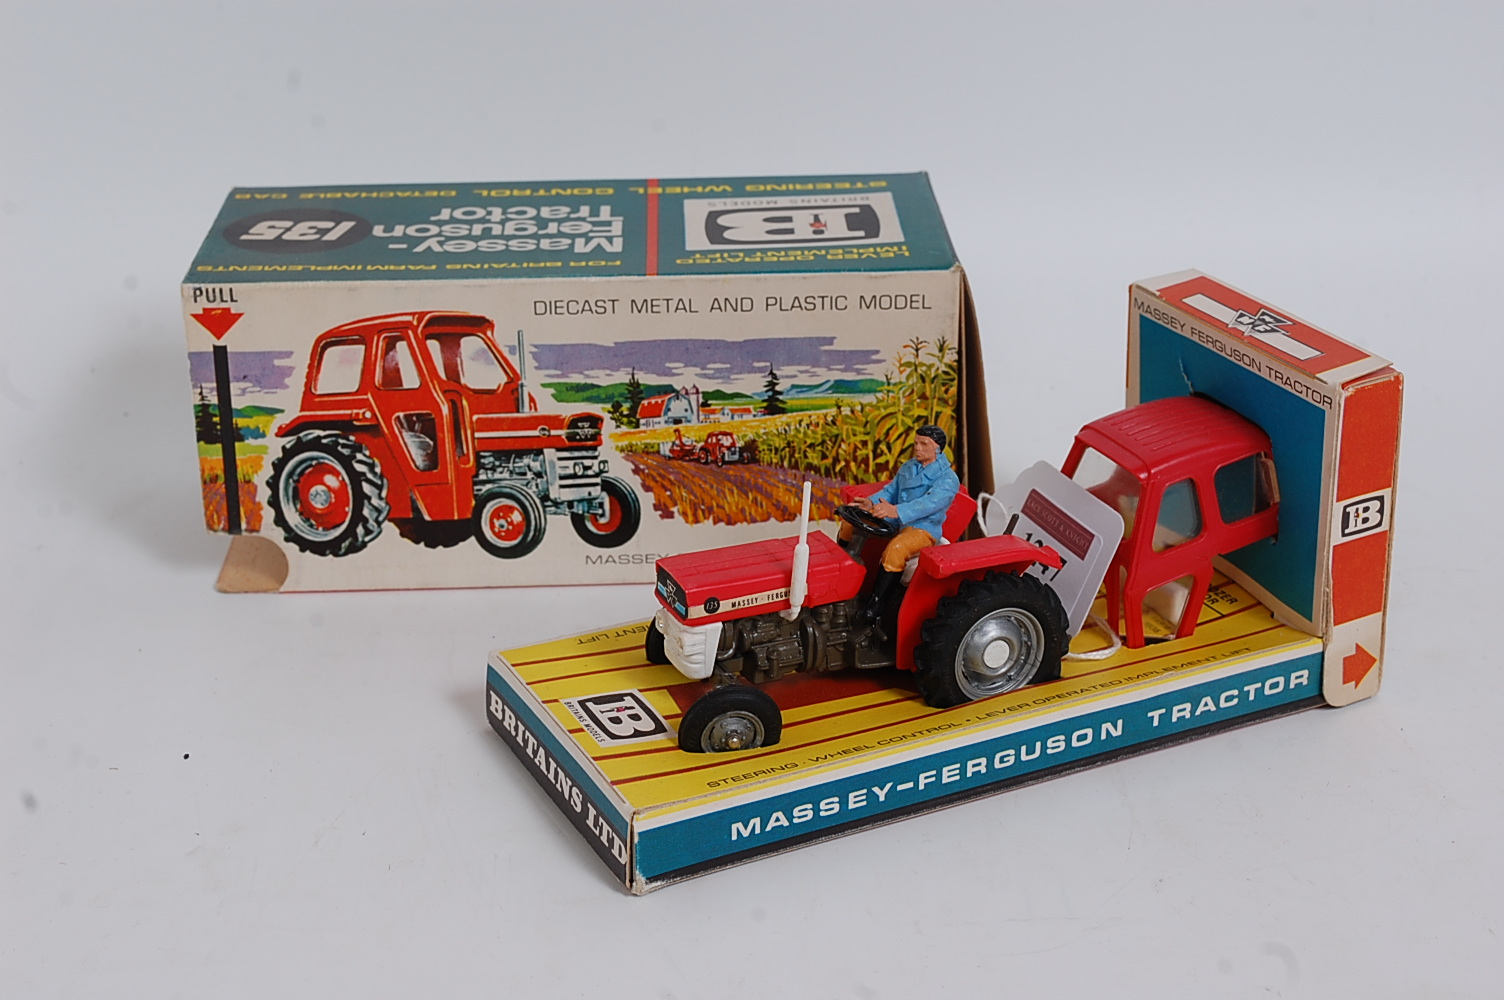 A Britains No. 9529 Massey Ferguson 135 tractor, comprising of grey, red and white body with